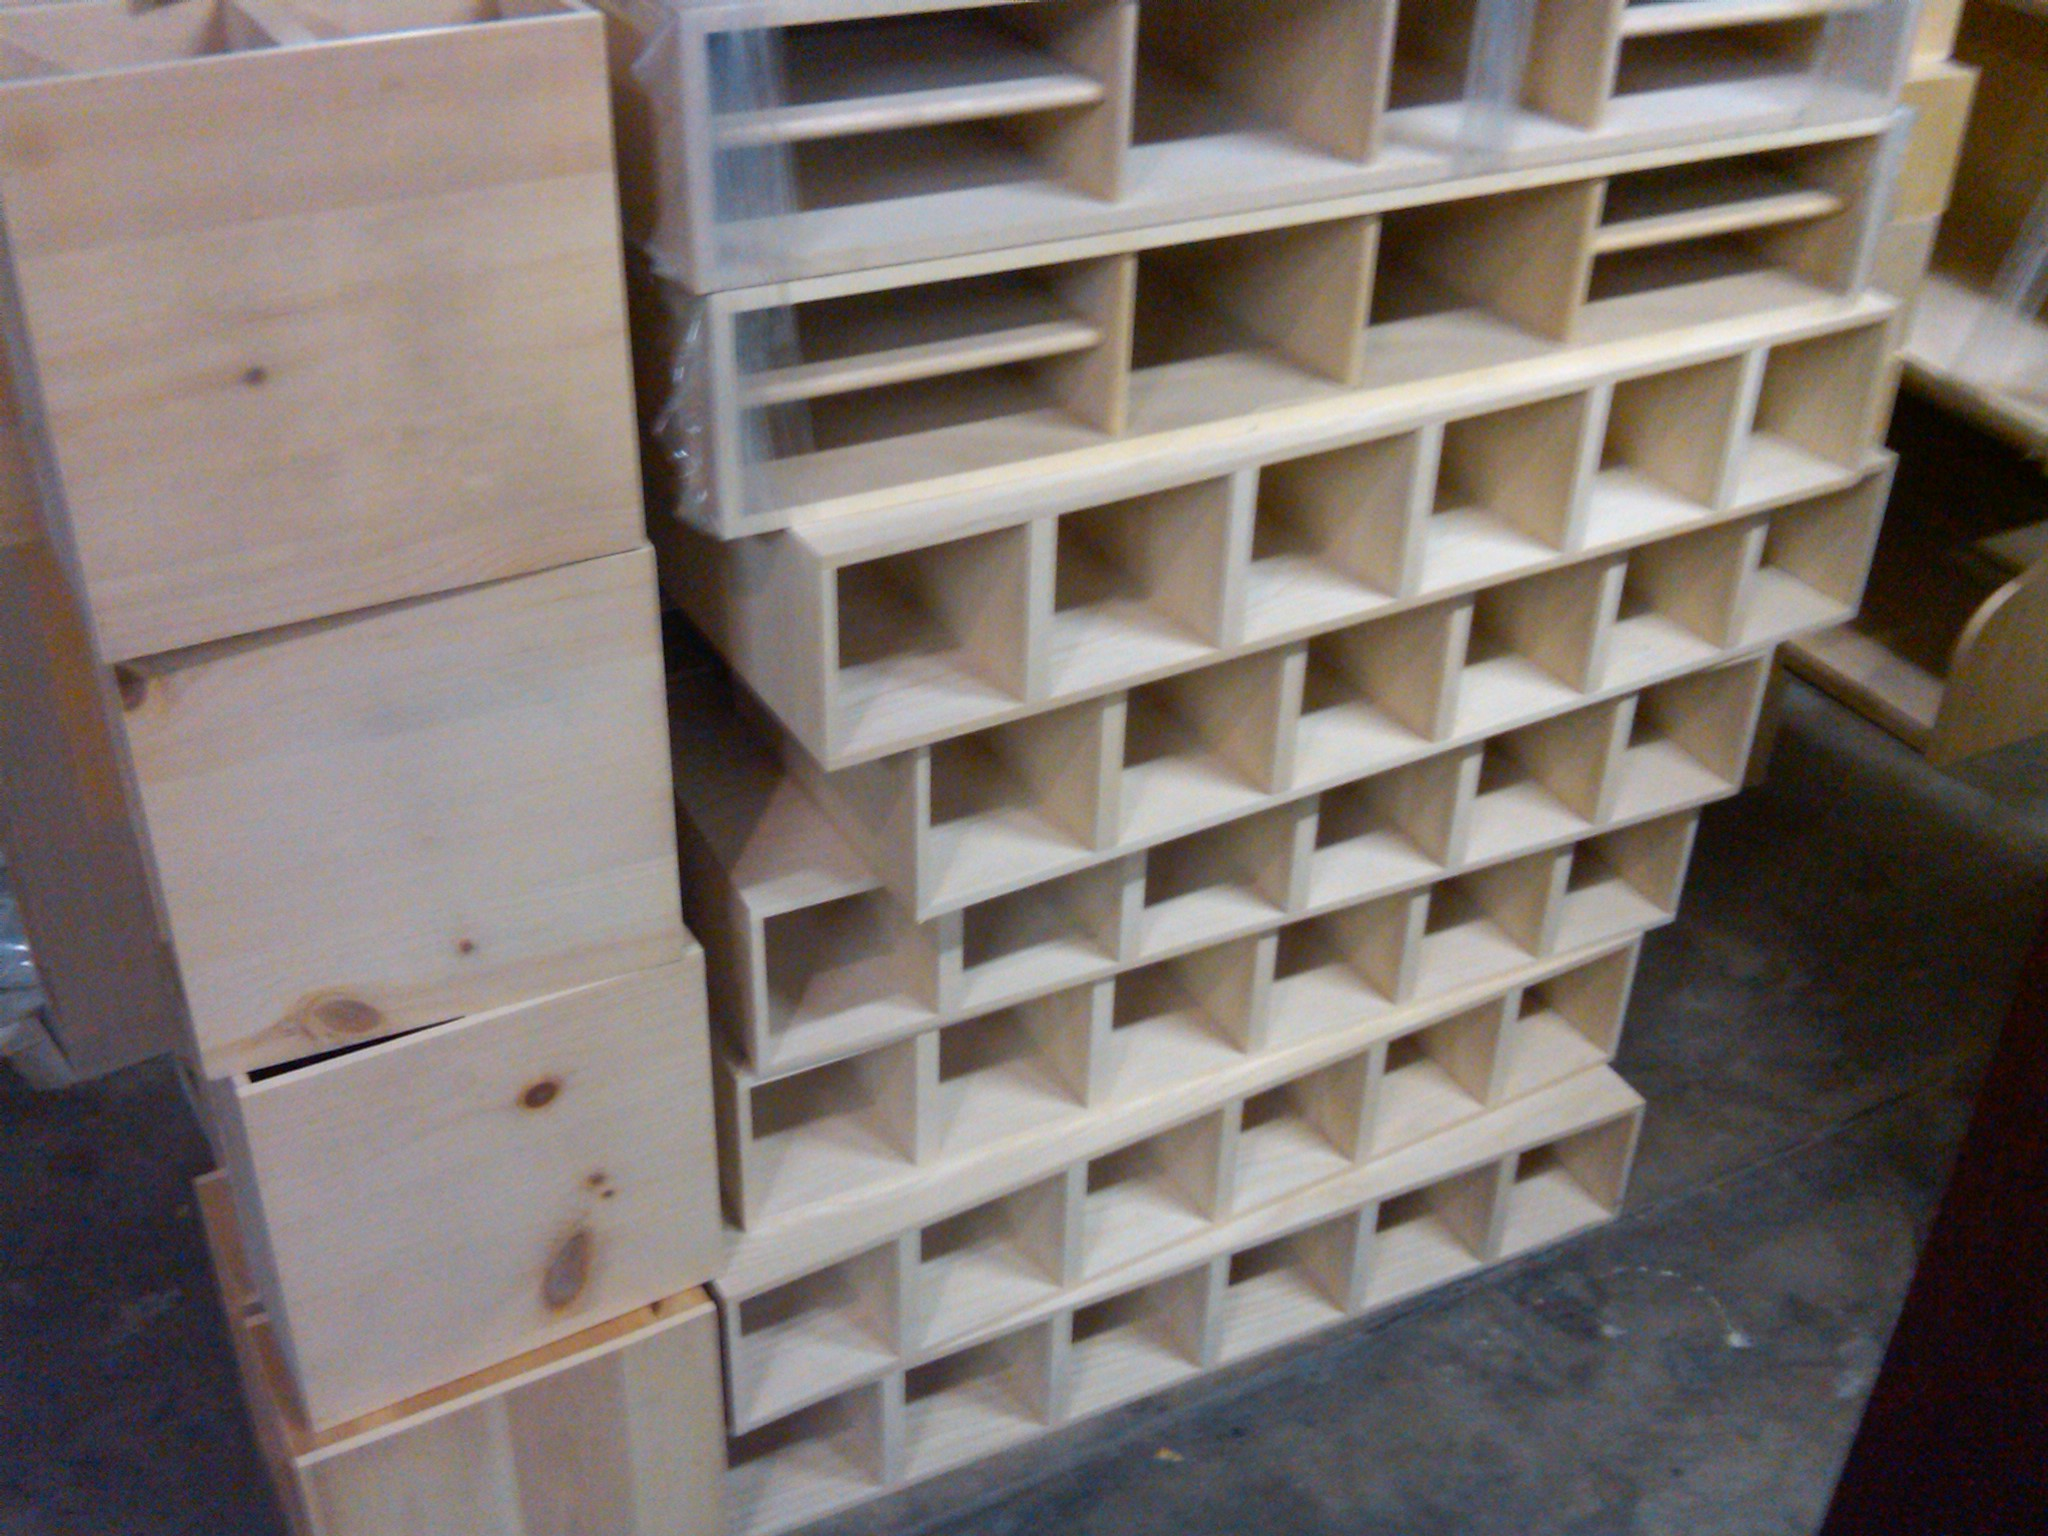 Creative Storage Solutions At Bud S Warehouse Bud S